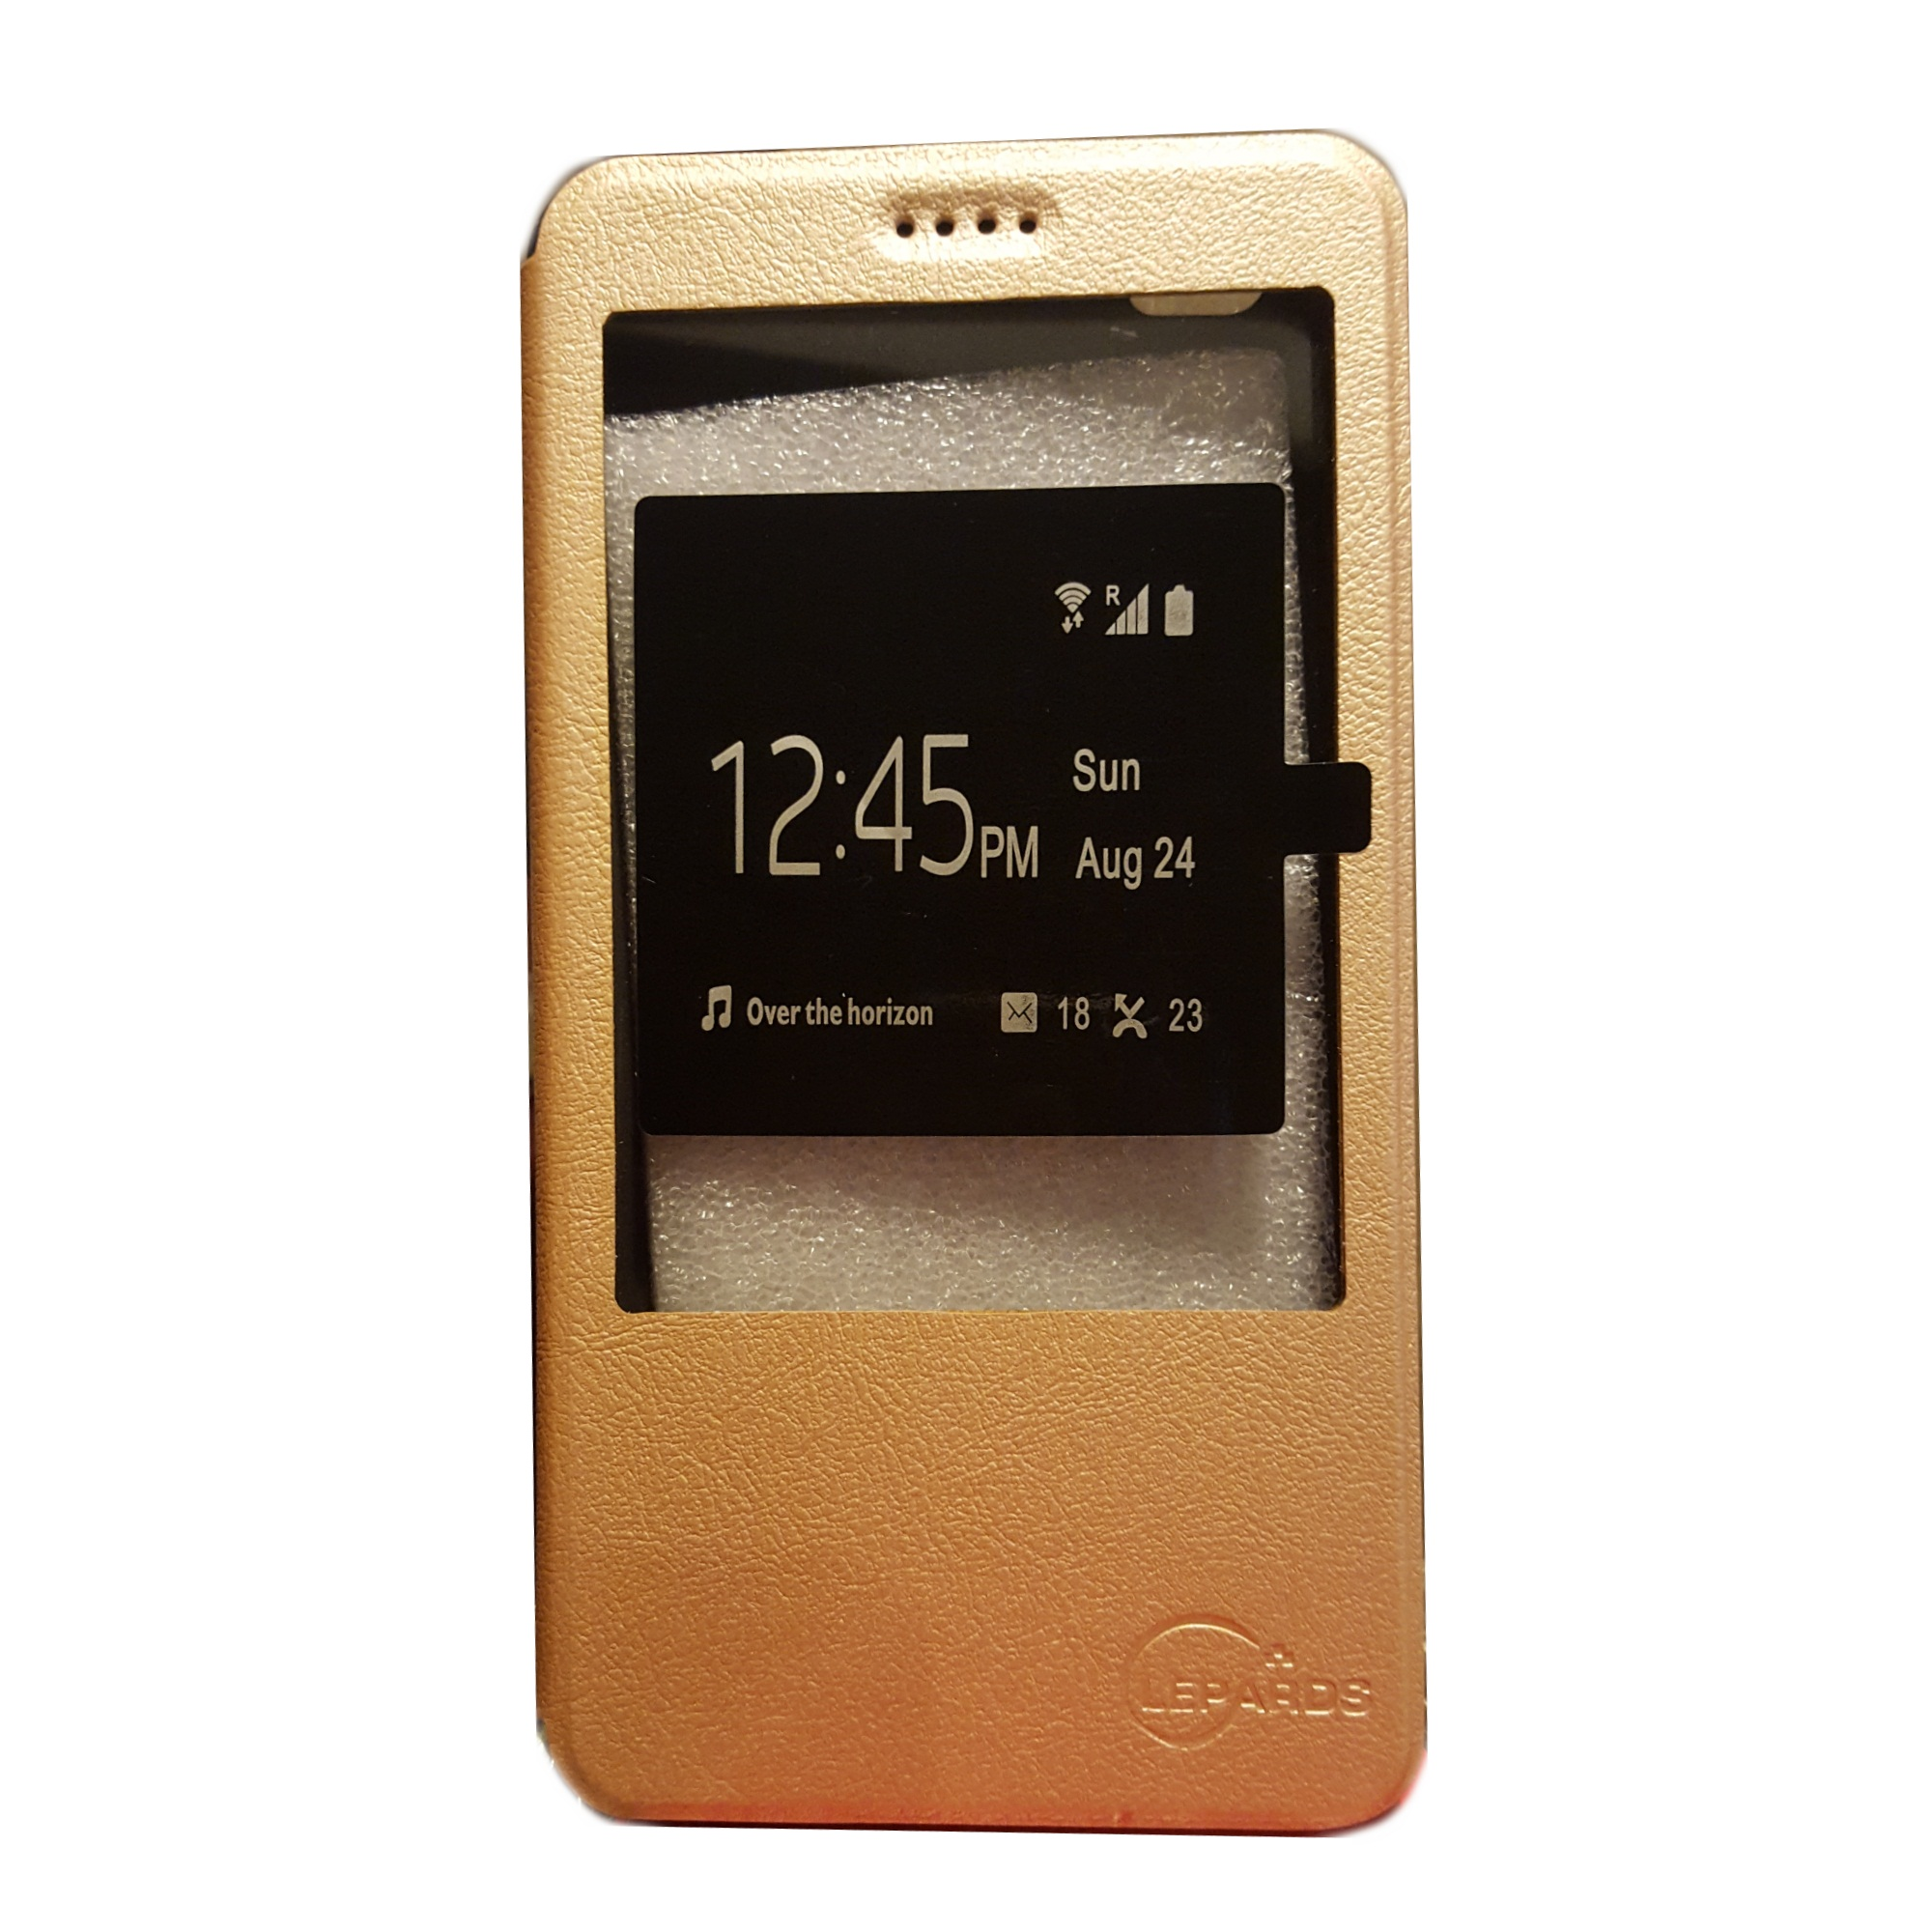 View Leather Flip Cover for Xiaomi Mi Max (Gold) product preview, discount at cheapest price